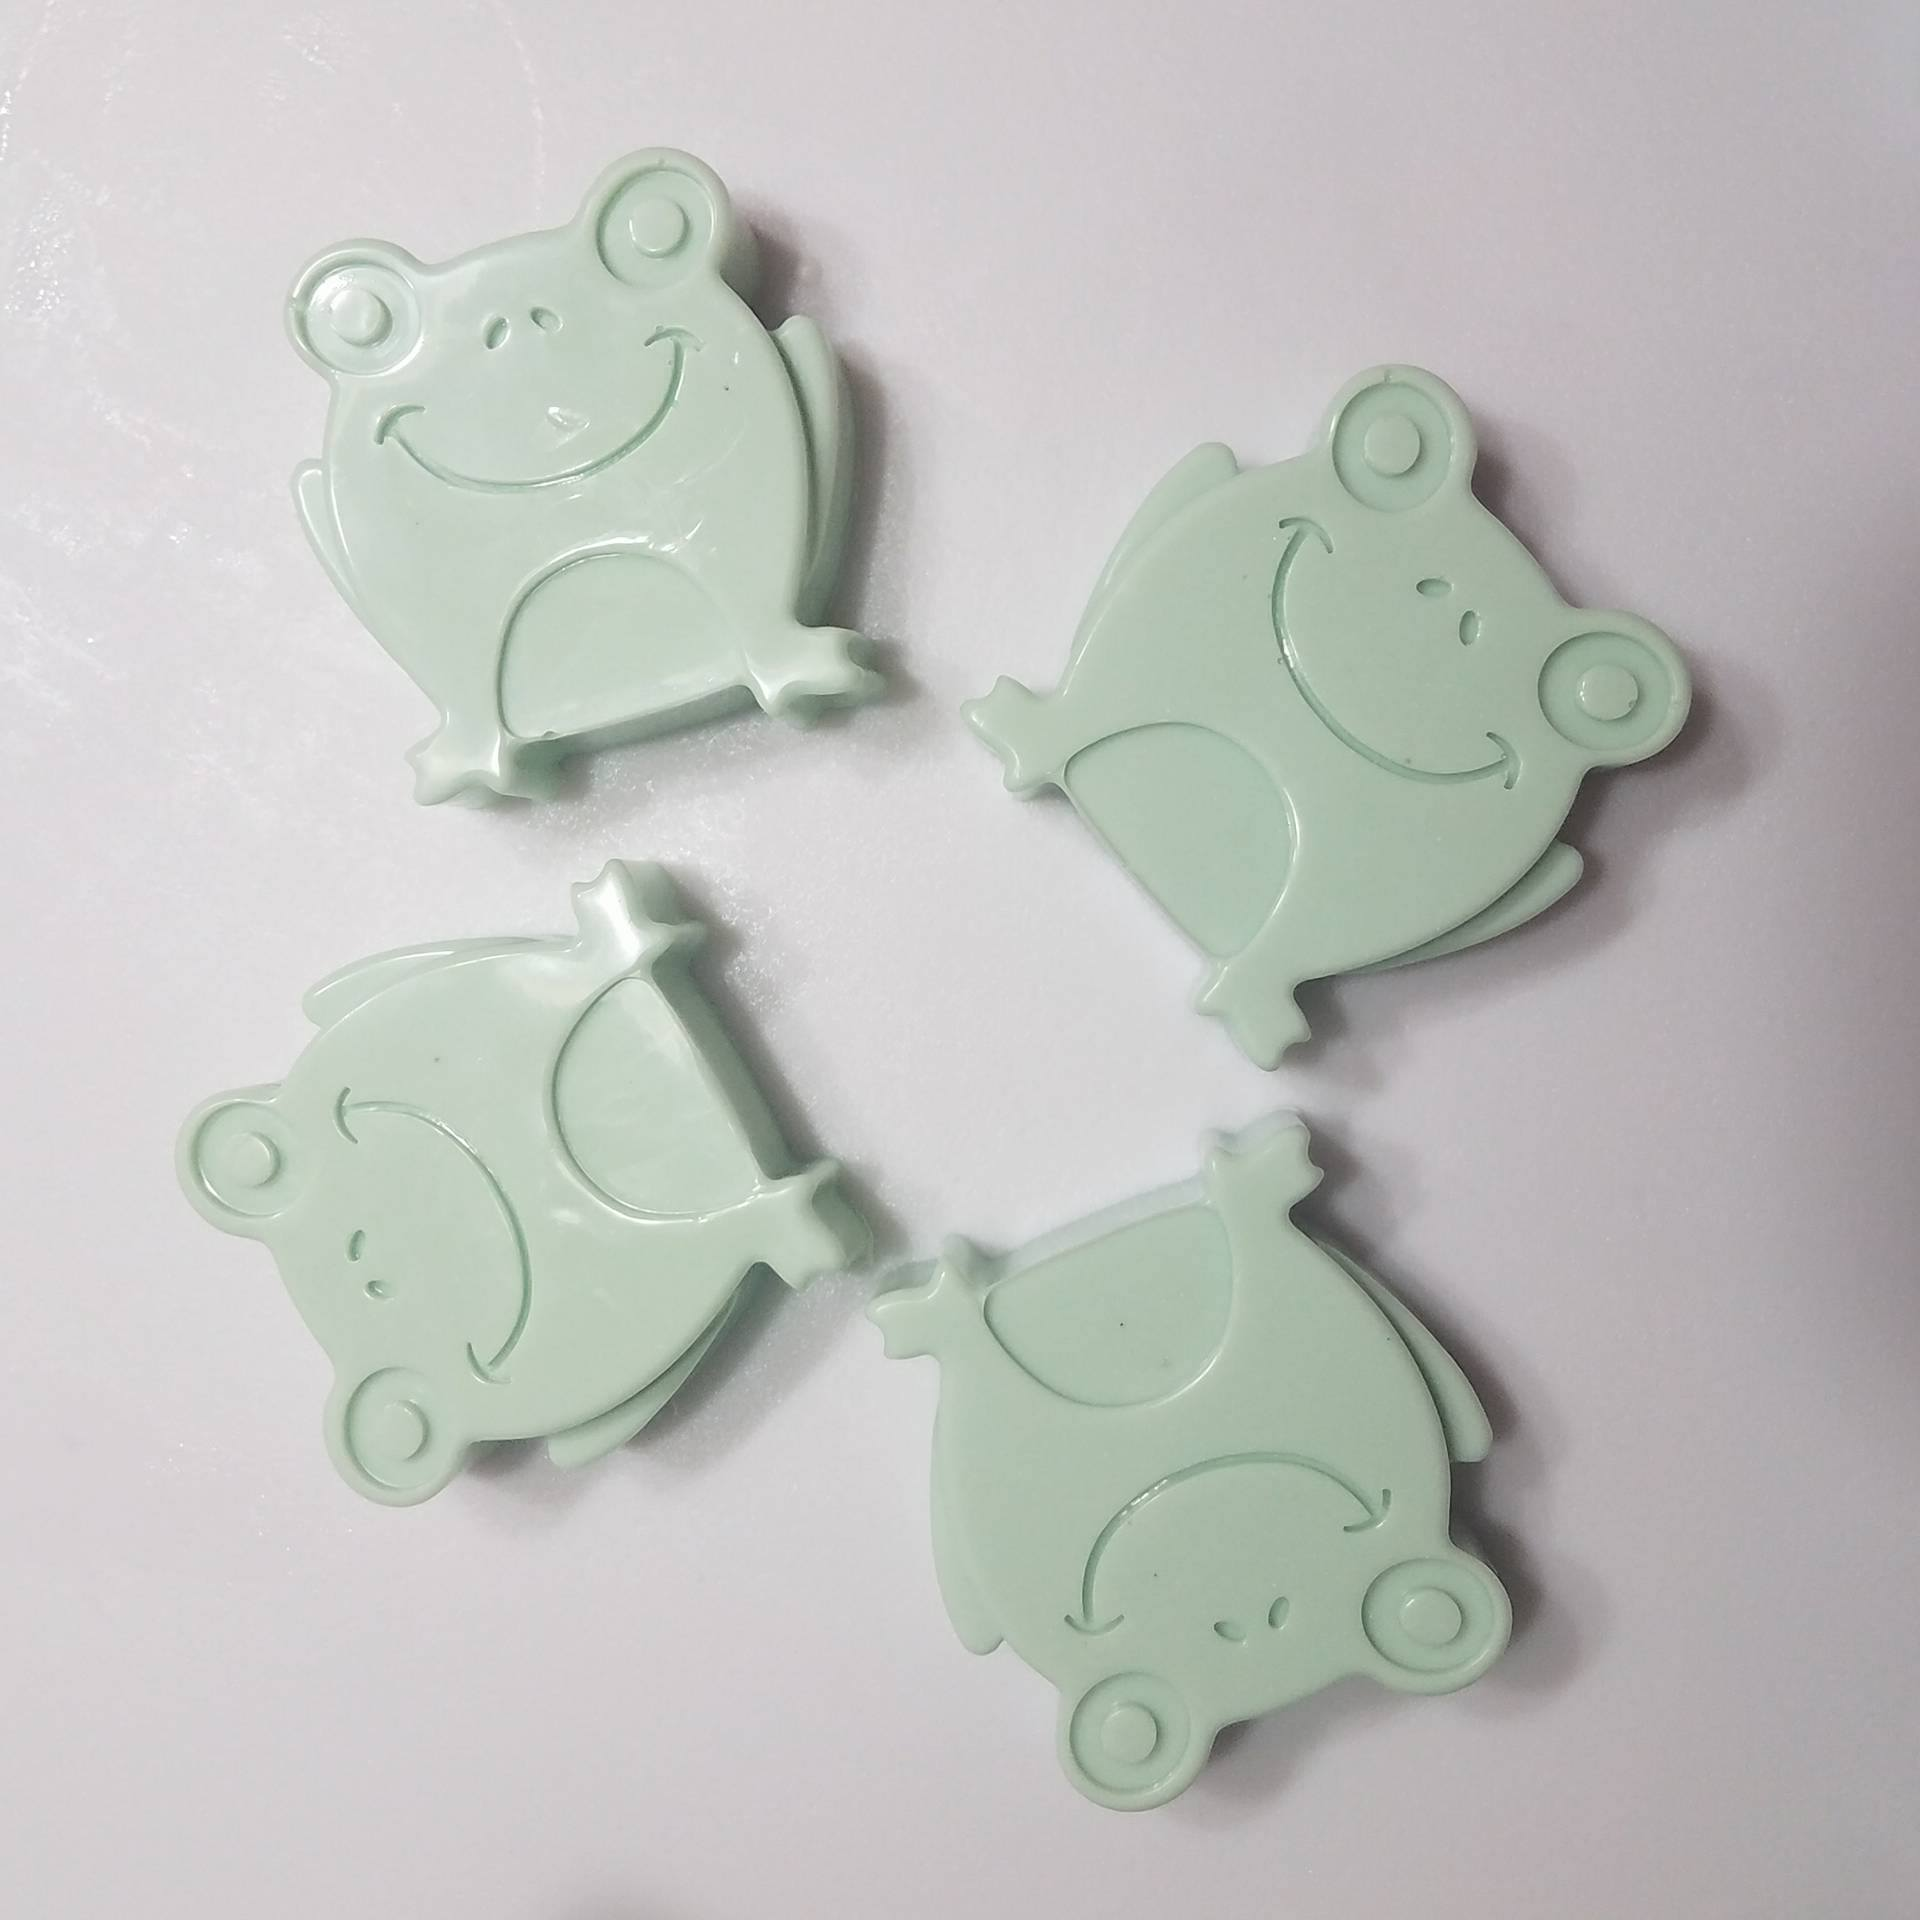 Fred the Frog - Moisturizing Shea Butter Soap